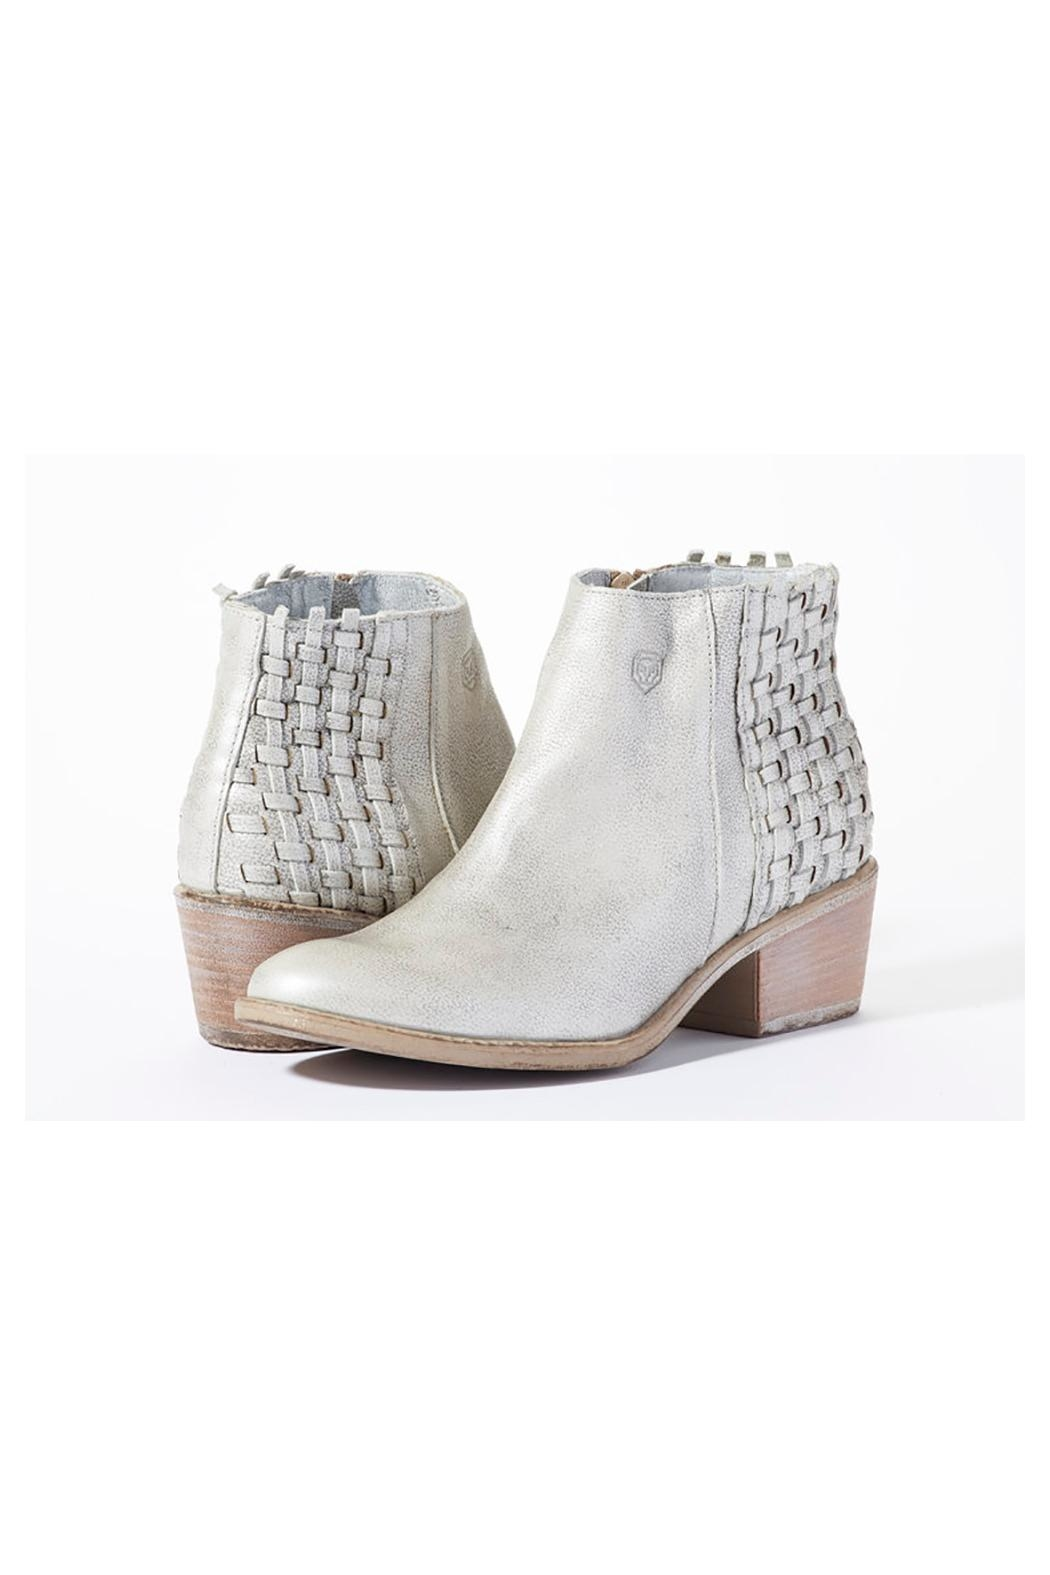 Rebel With Cause Silver Braided Bootie - Main Image